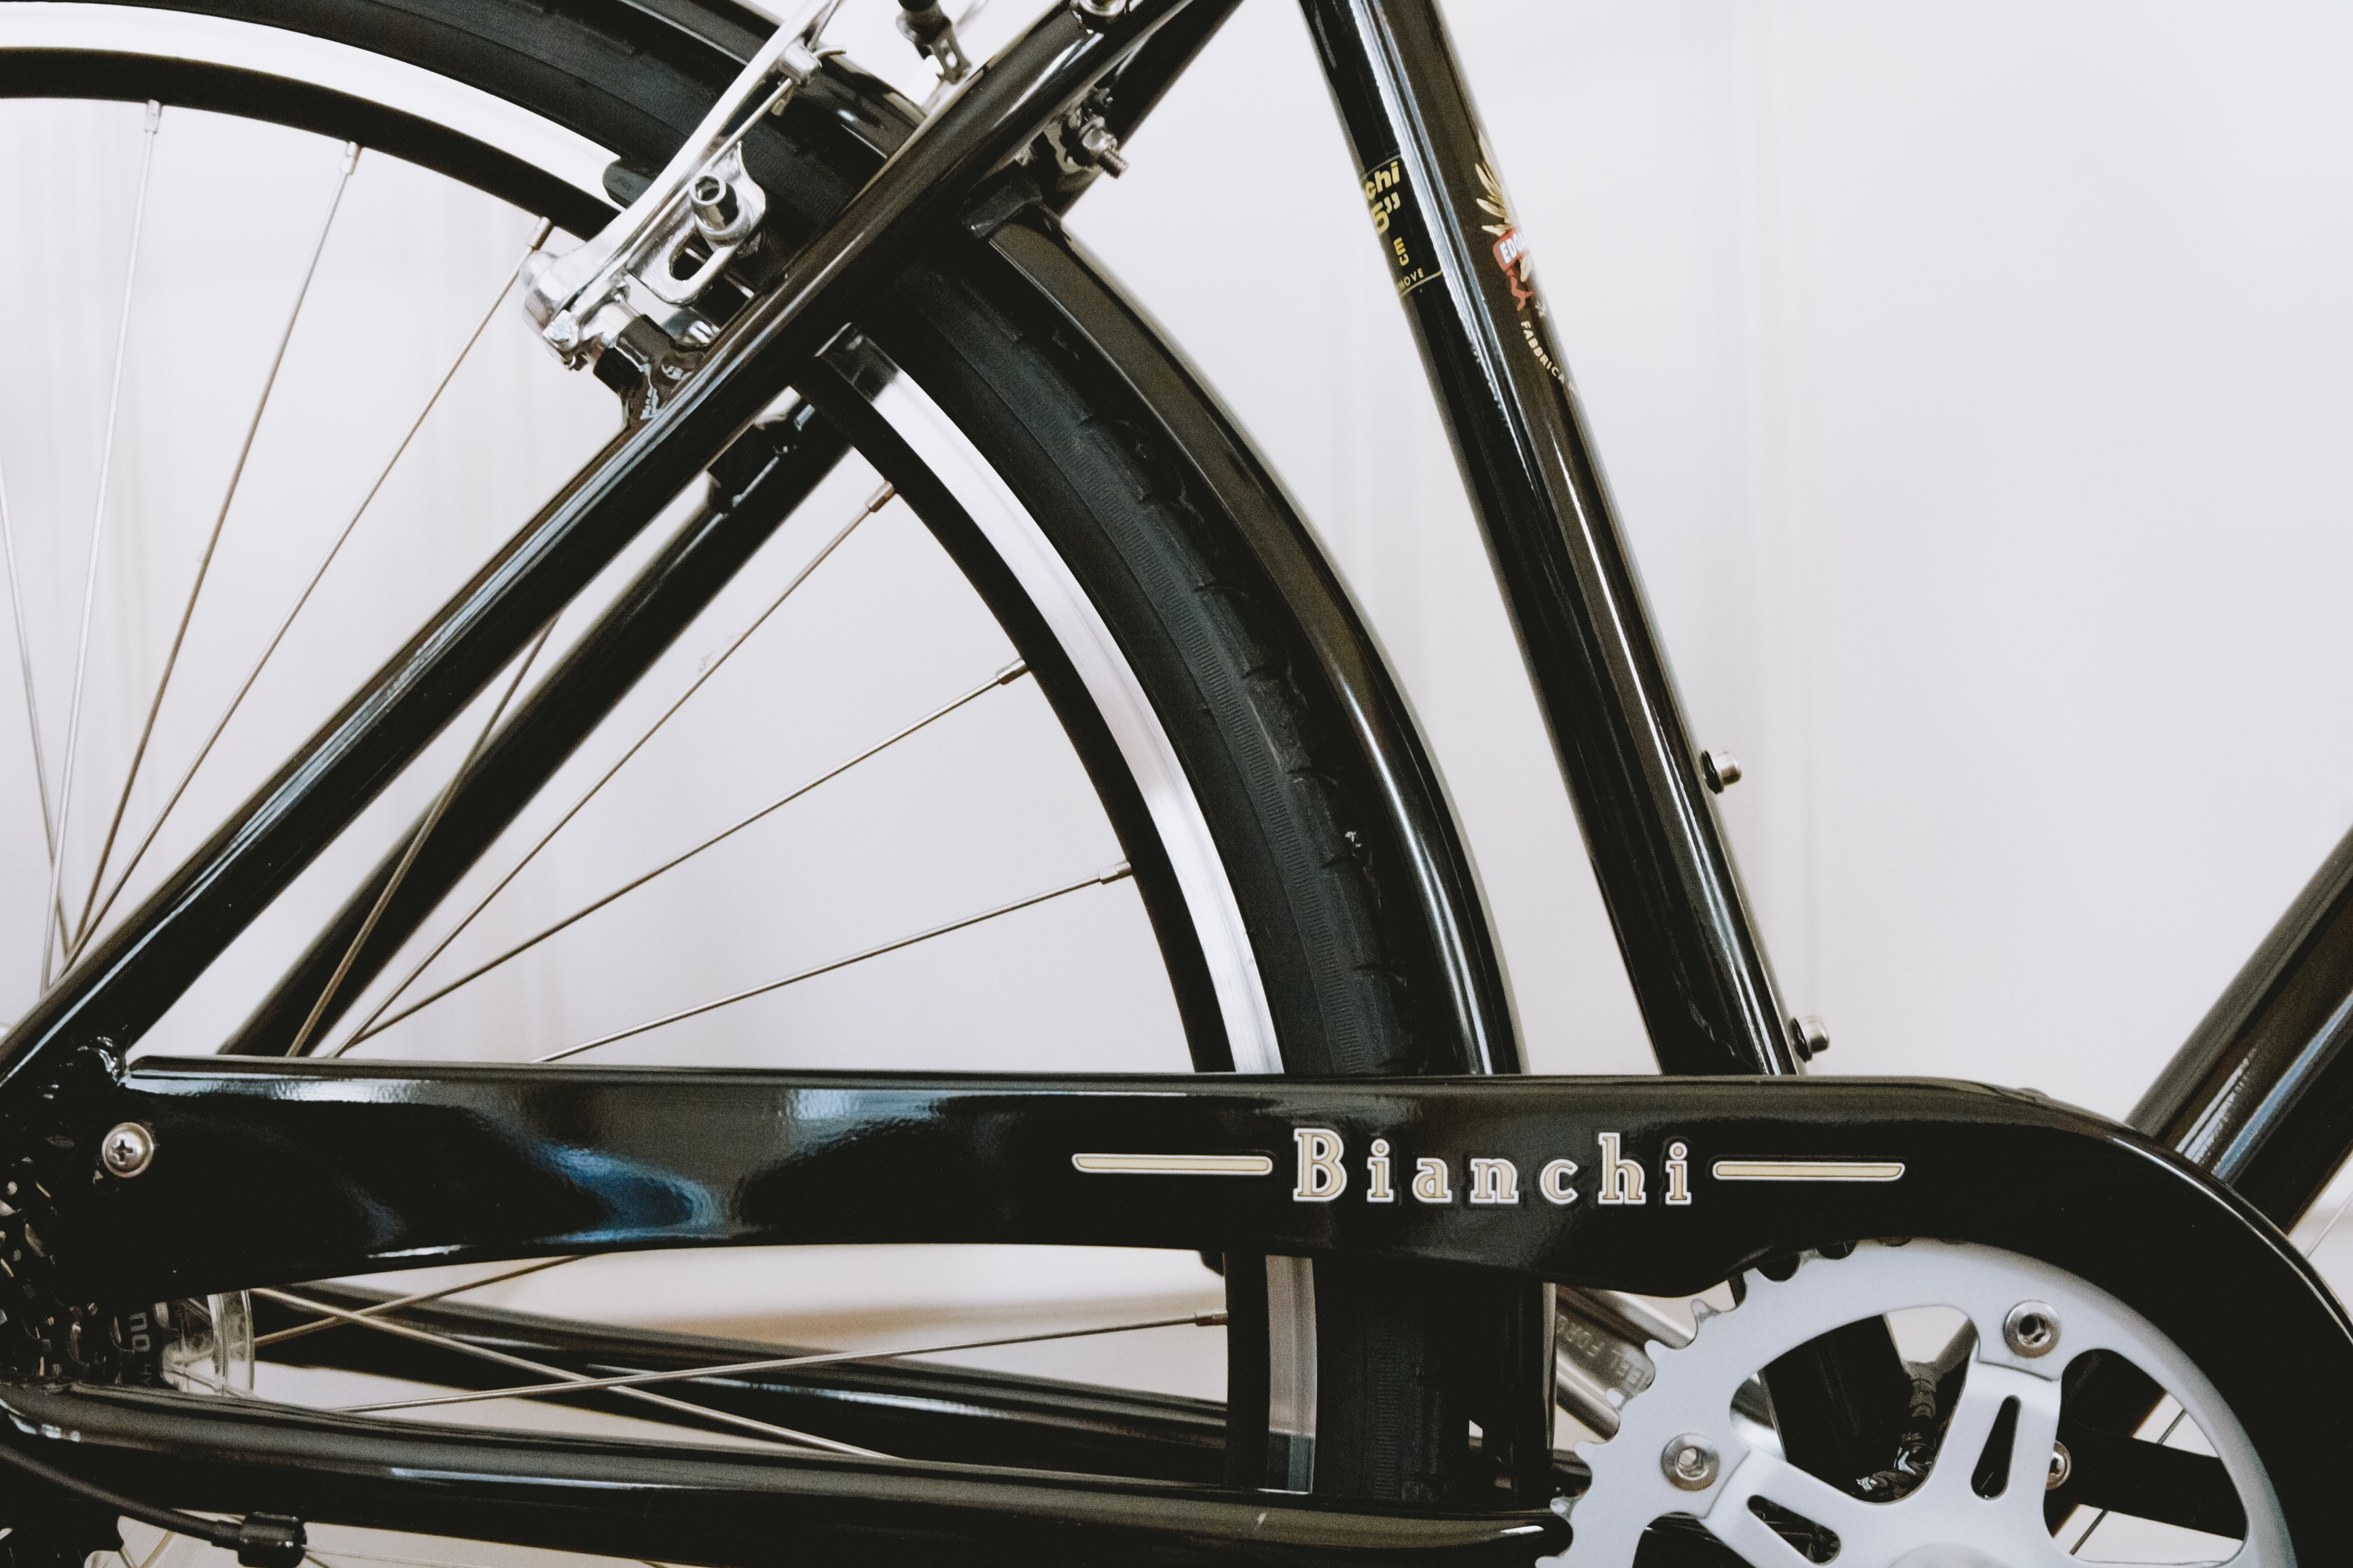 black Bianchi bicycle frame